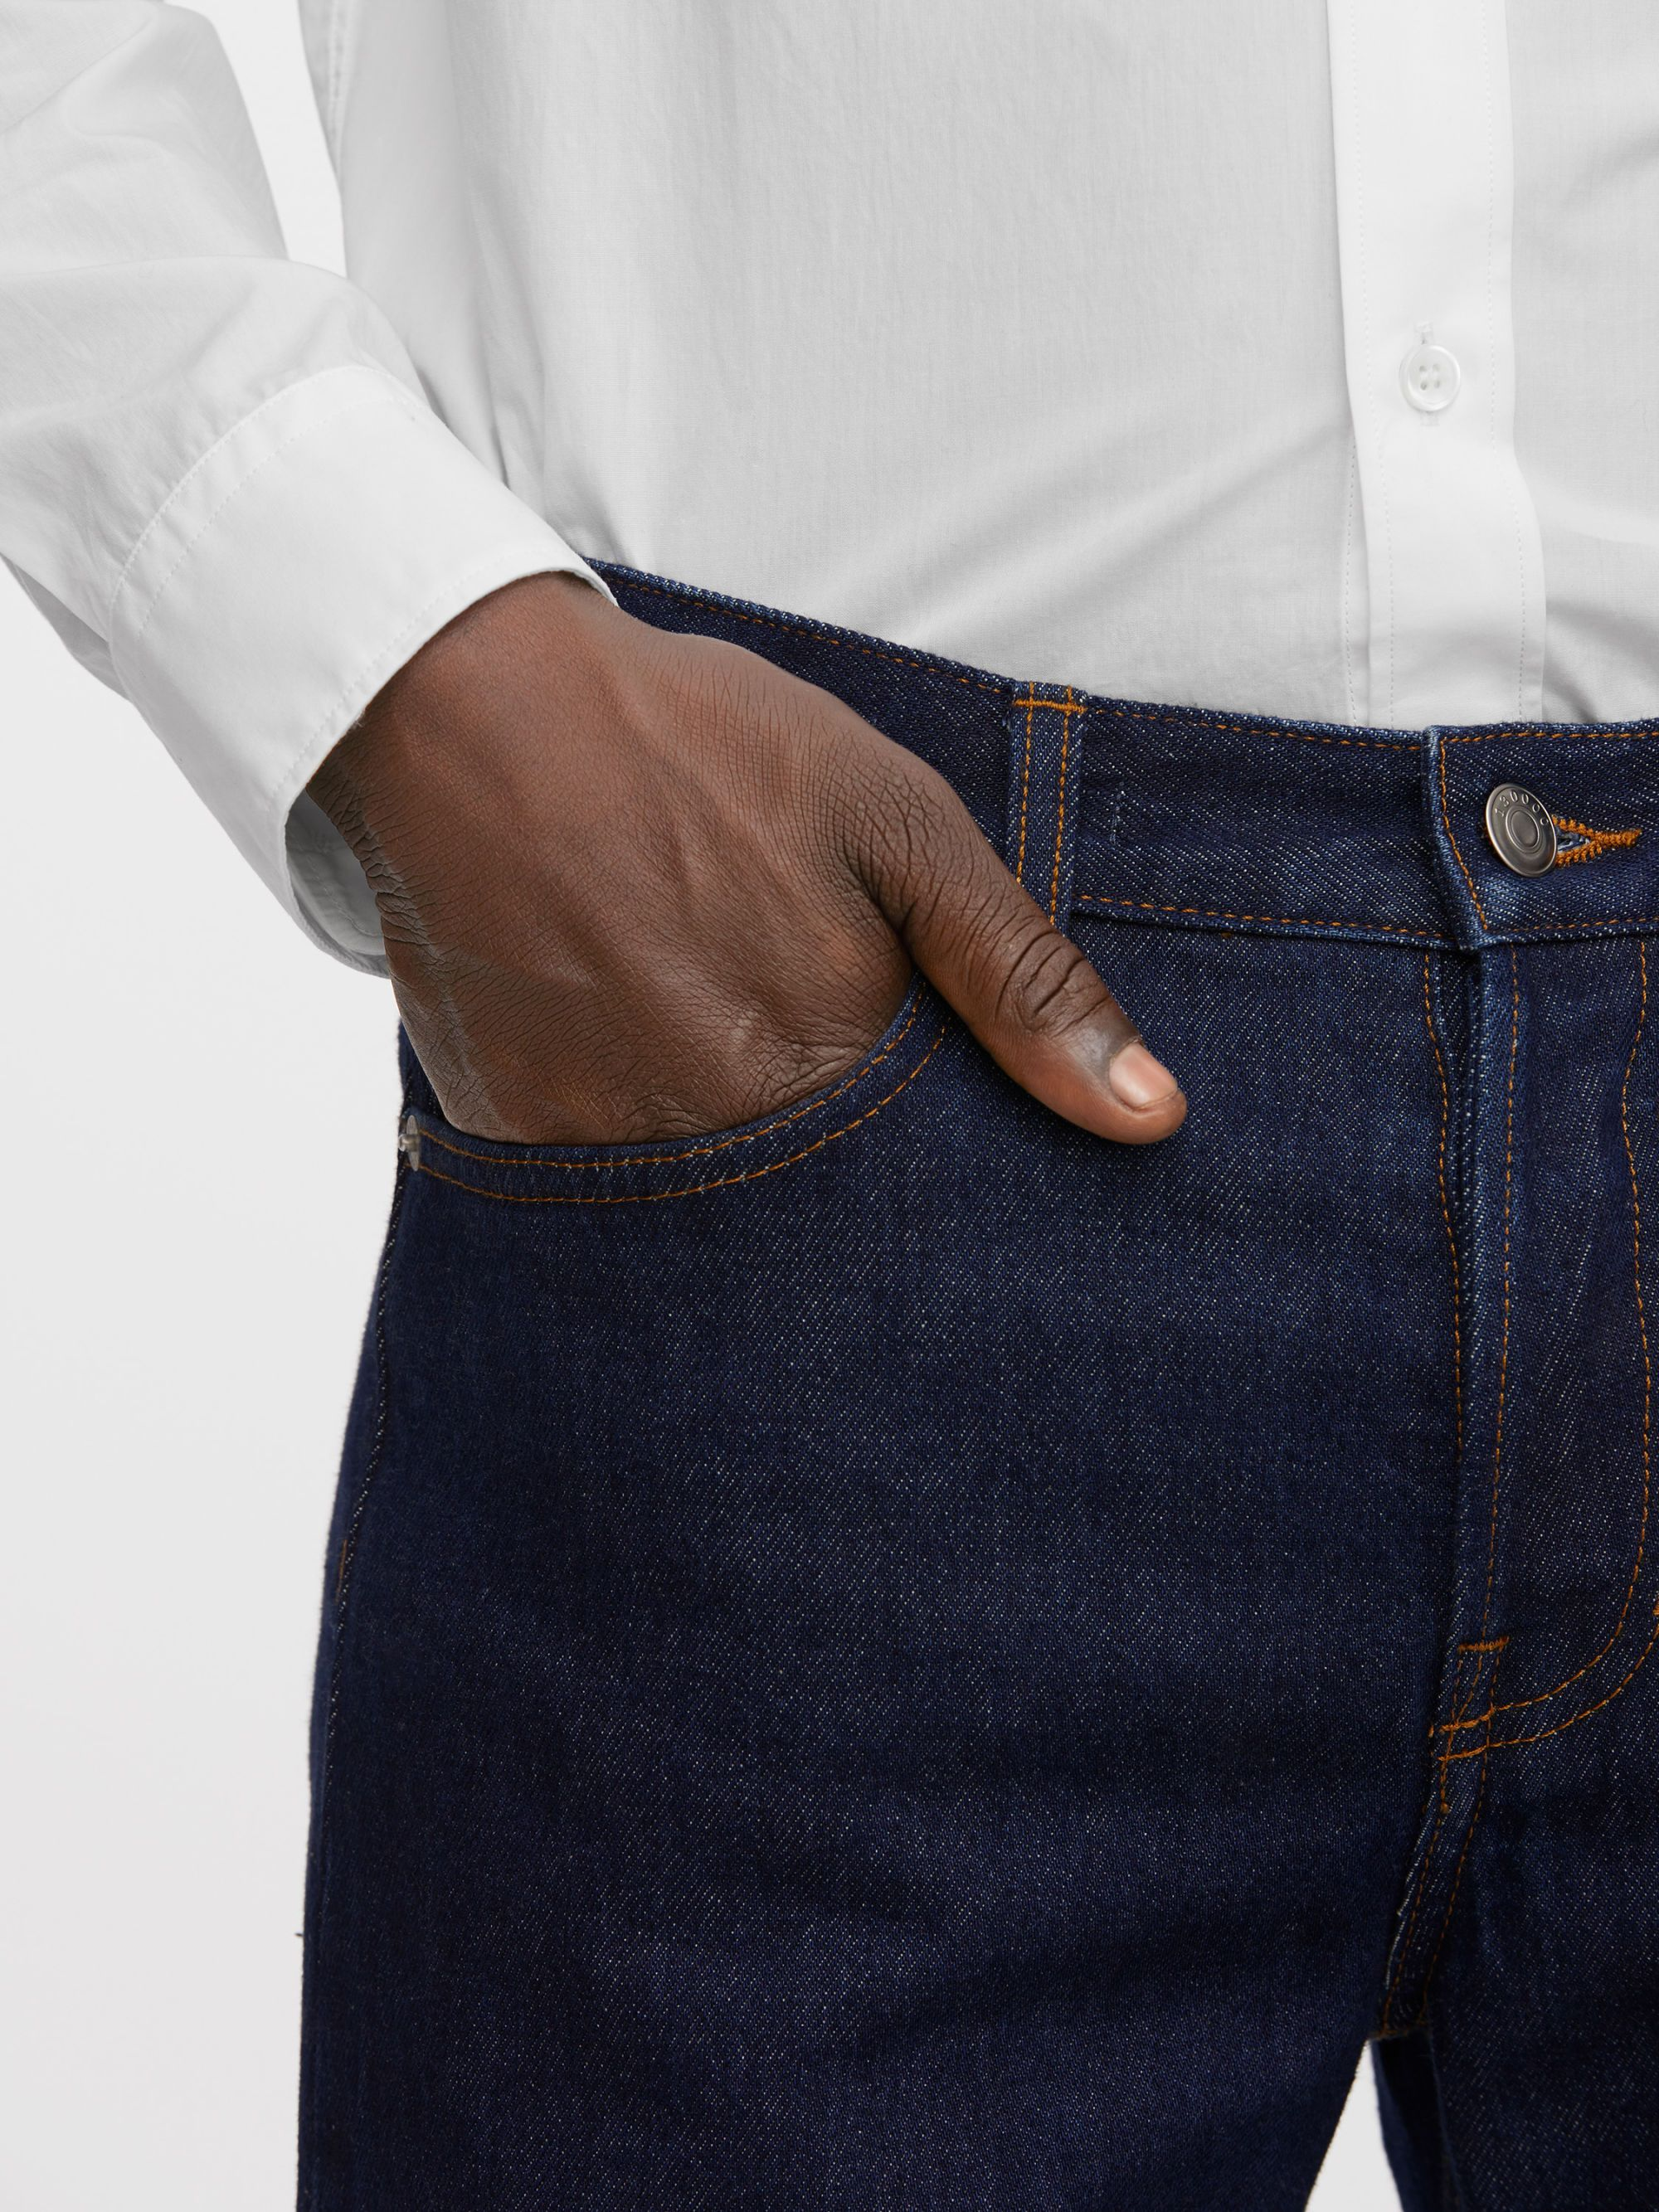 130002-265 - Standard Rinsed Indigo Jeans. A classic 5-pocket design, these regular-fit trousers are fashioned from rigid denim twill with a rinsed indigo look. 14 oz. #ARKET